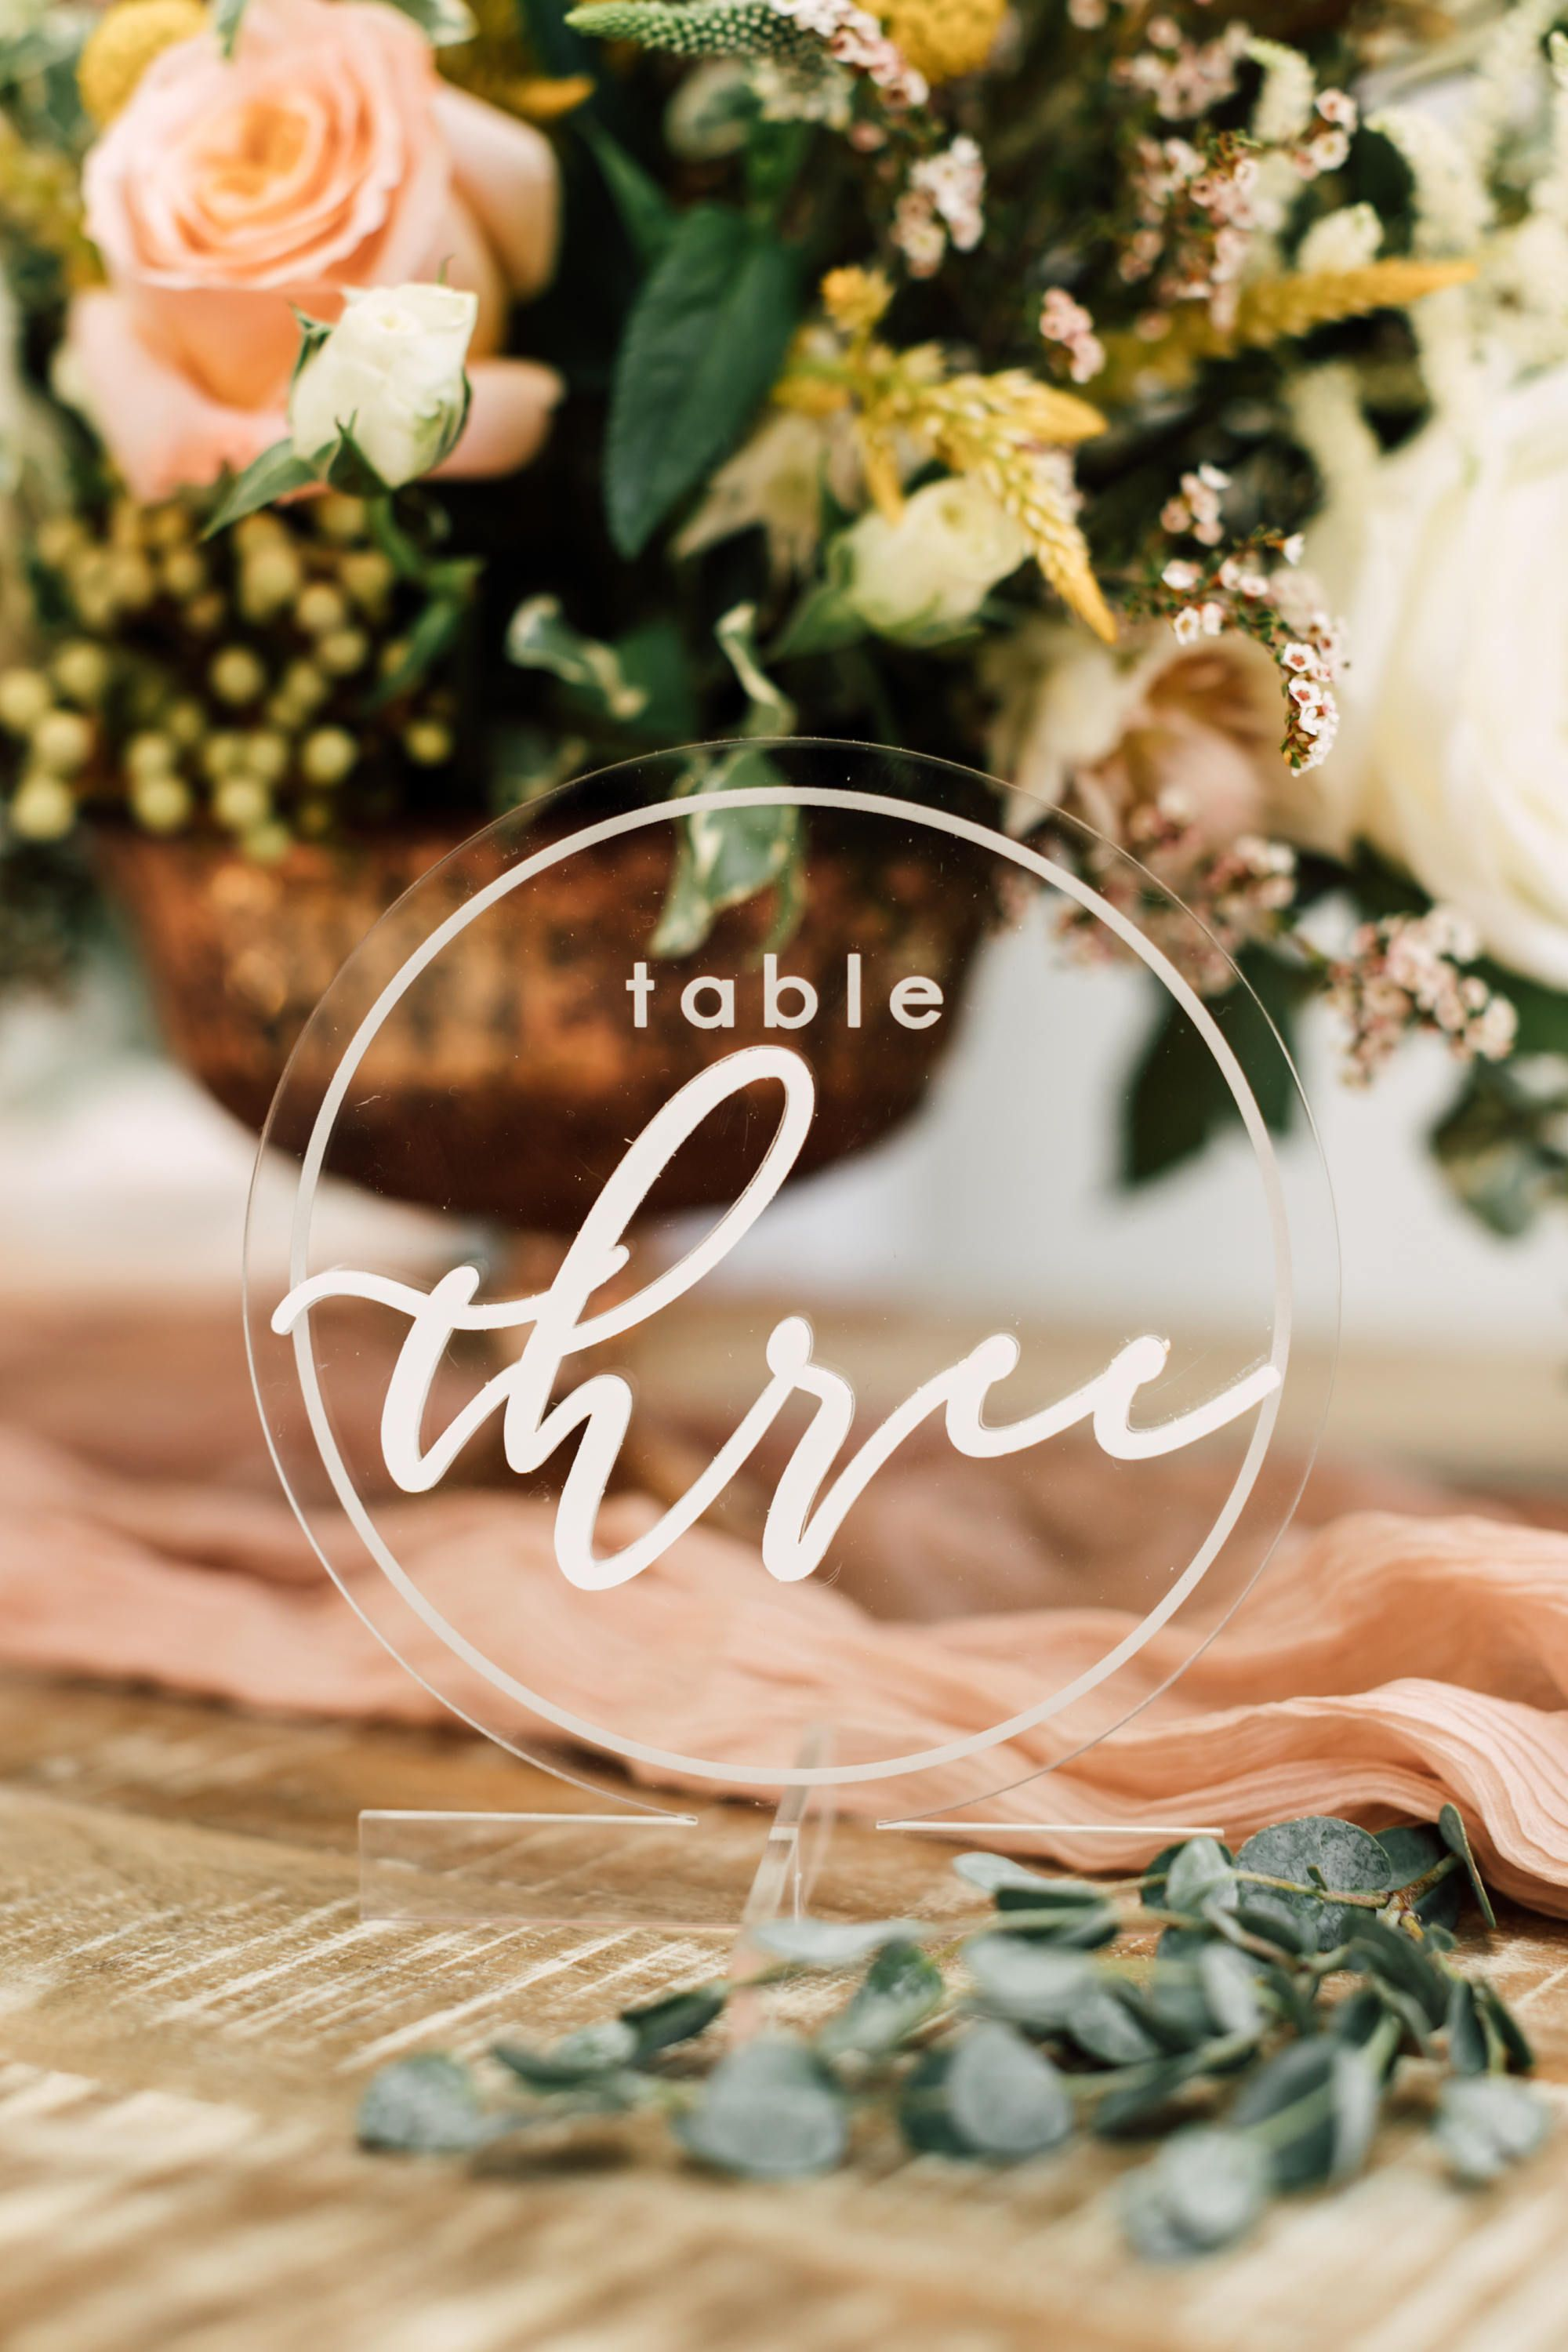 Were Swooning Over These Unique Table Numbers - Laser Cut